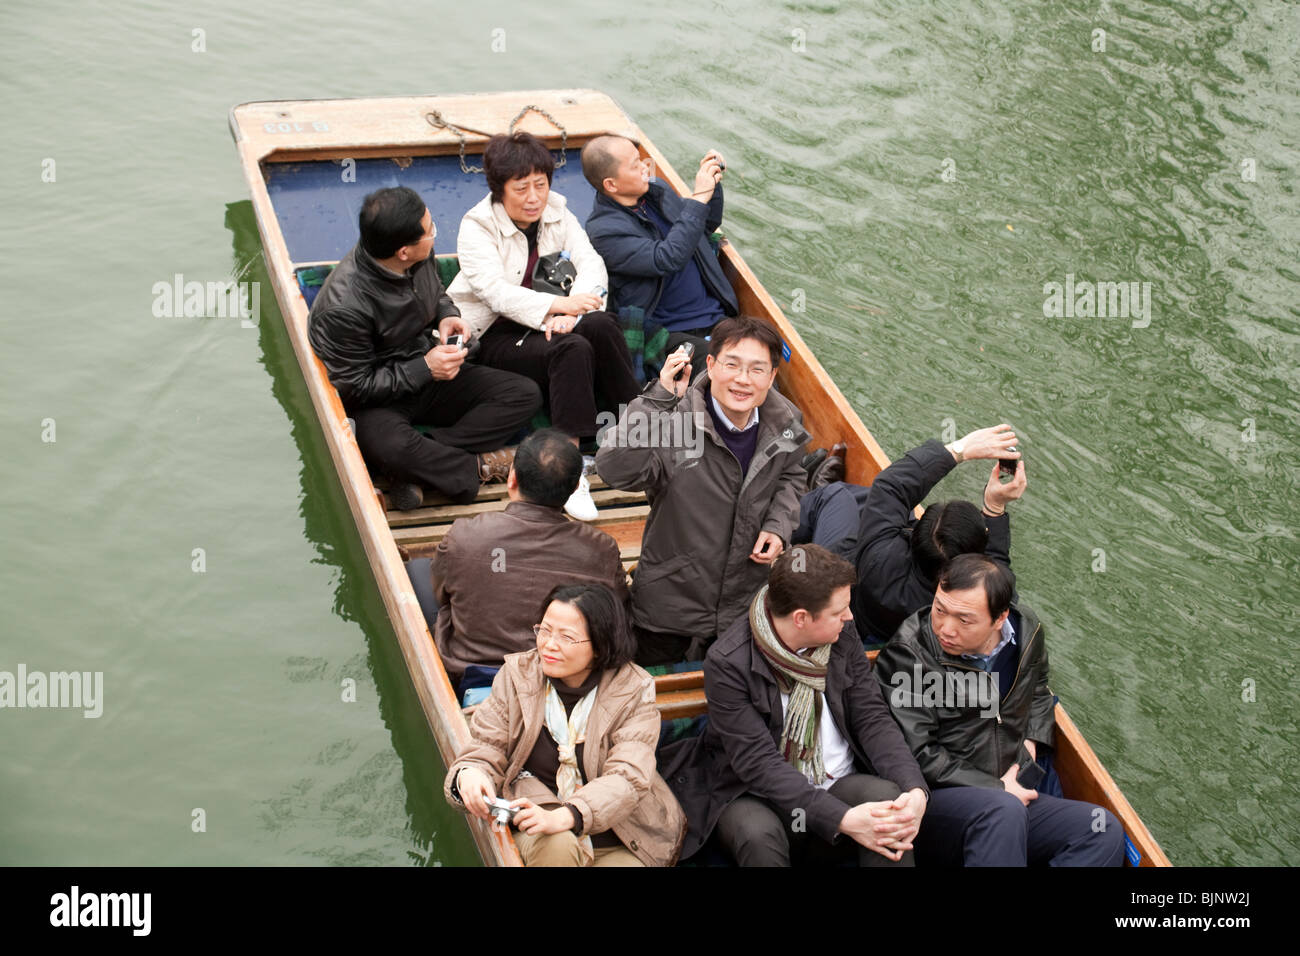 Japanese tourists in a punt, River Cam, Cambridge UK Stock Photo